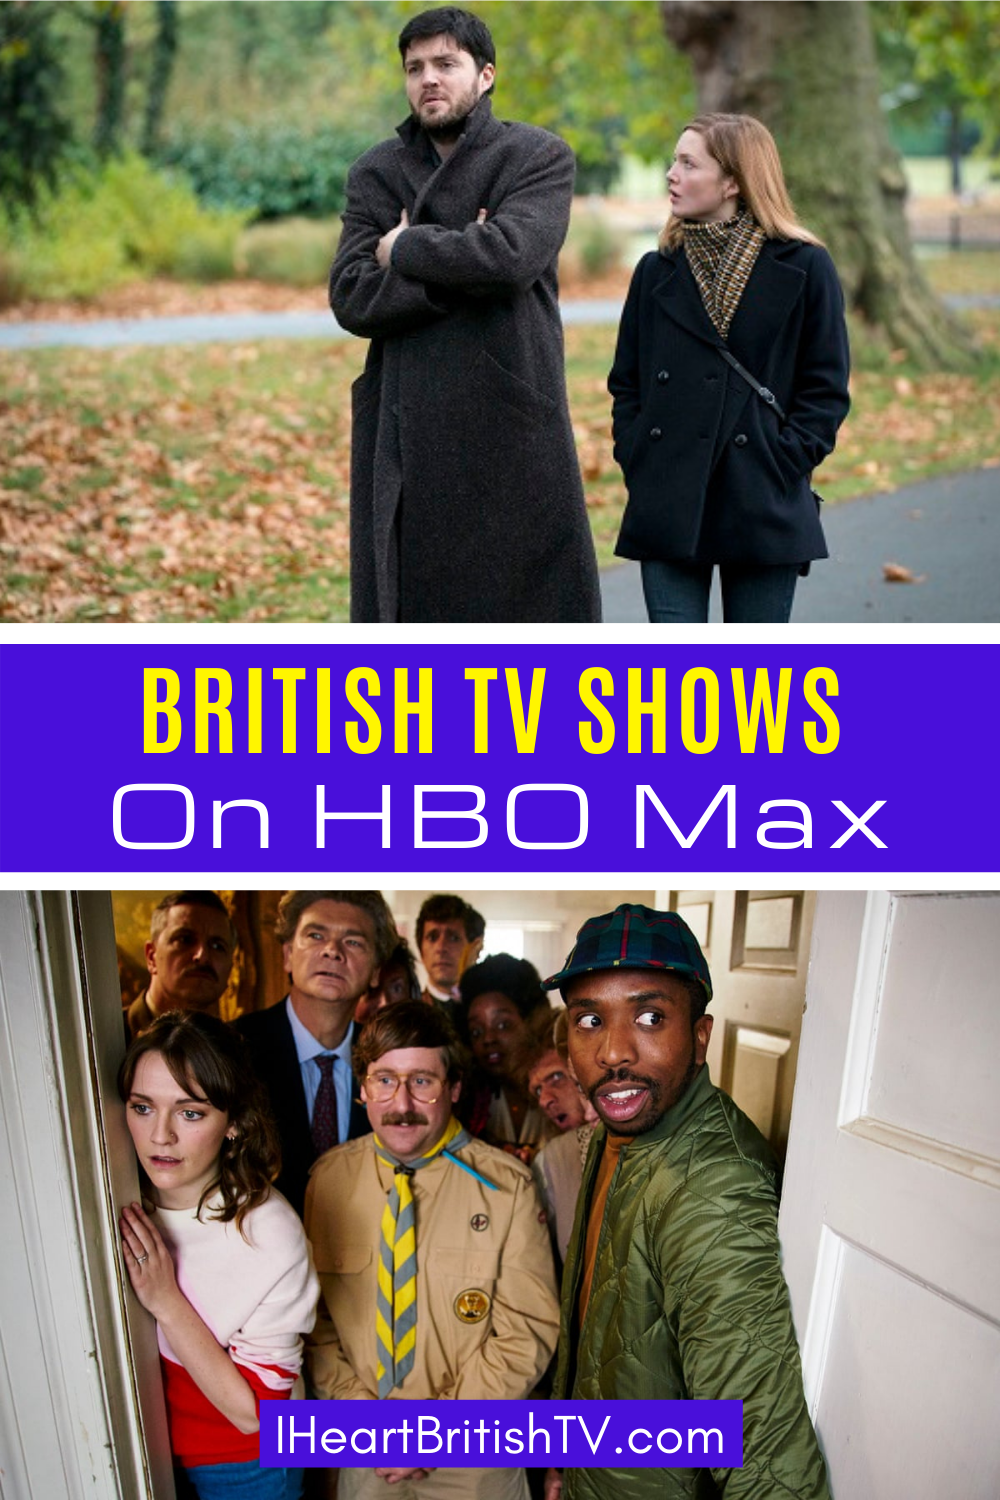 The Complete List of British TV Shows on HBO Max (2021) 18